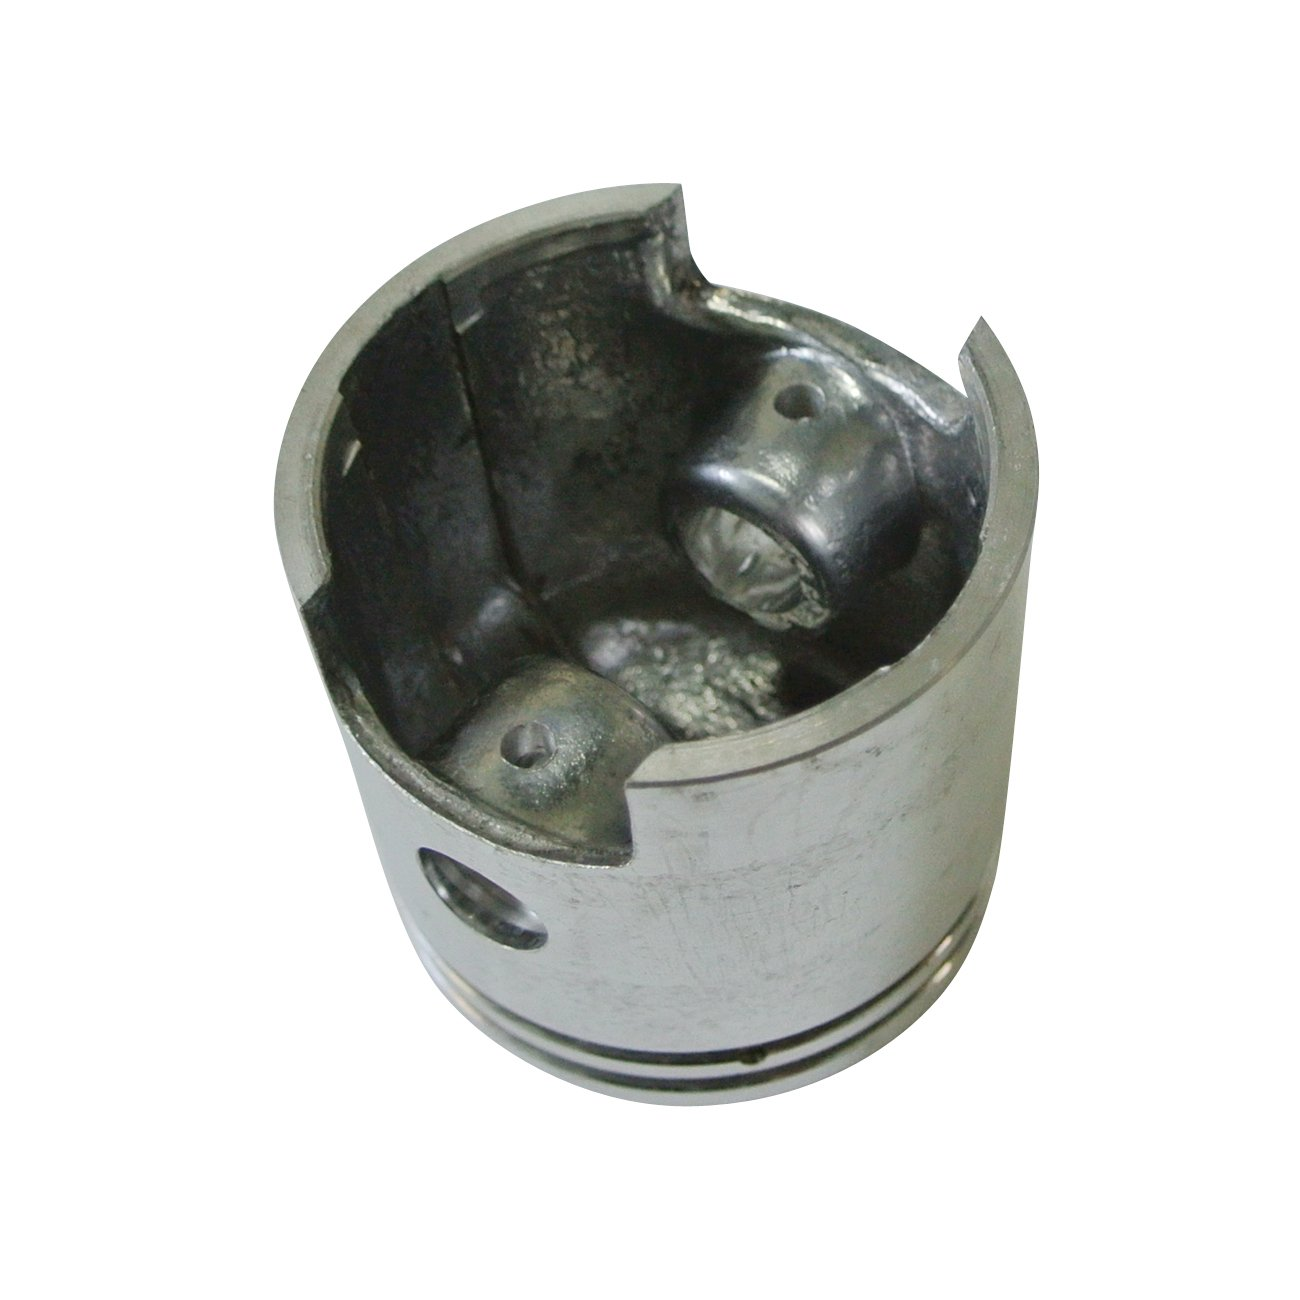 Northtiger Performance Piston 47mm Replace Part For 80cc Motorized Bicycle Engine Part